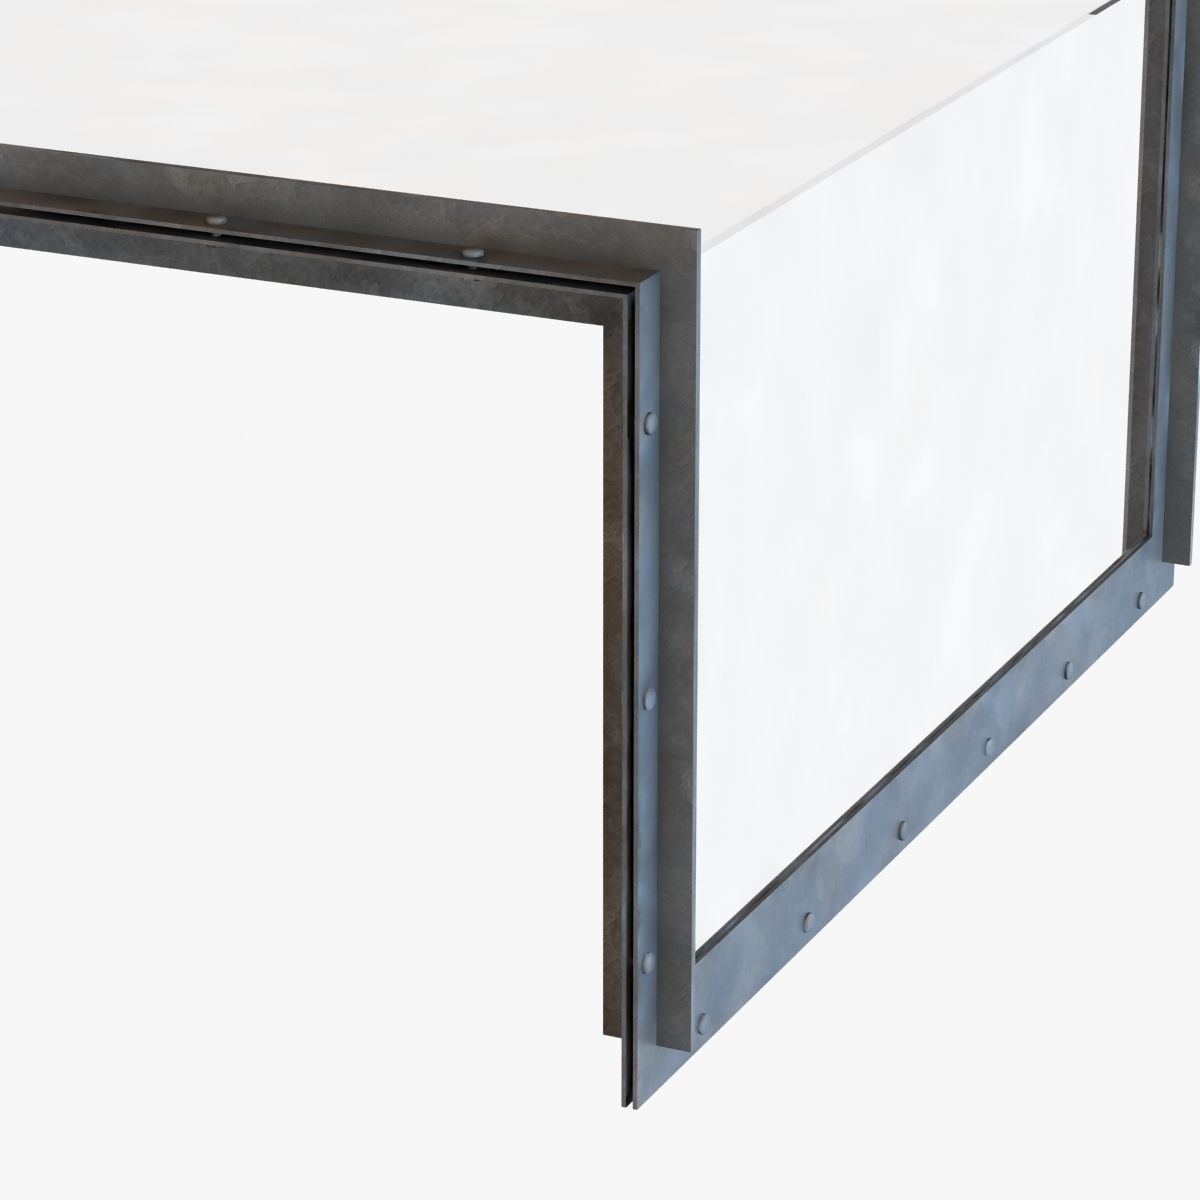 Popular 193 list glass waterfall table for Waterfall design coffee table